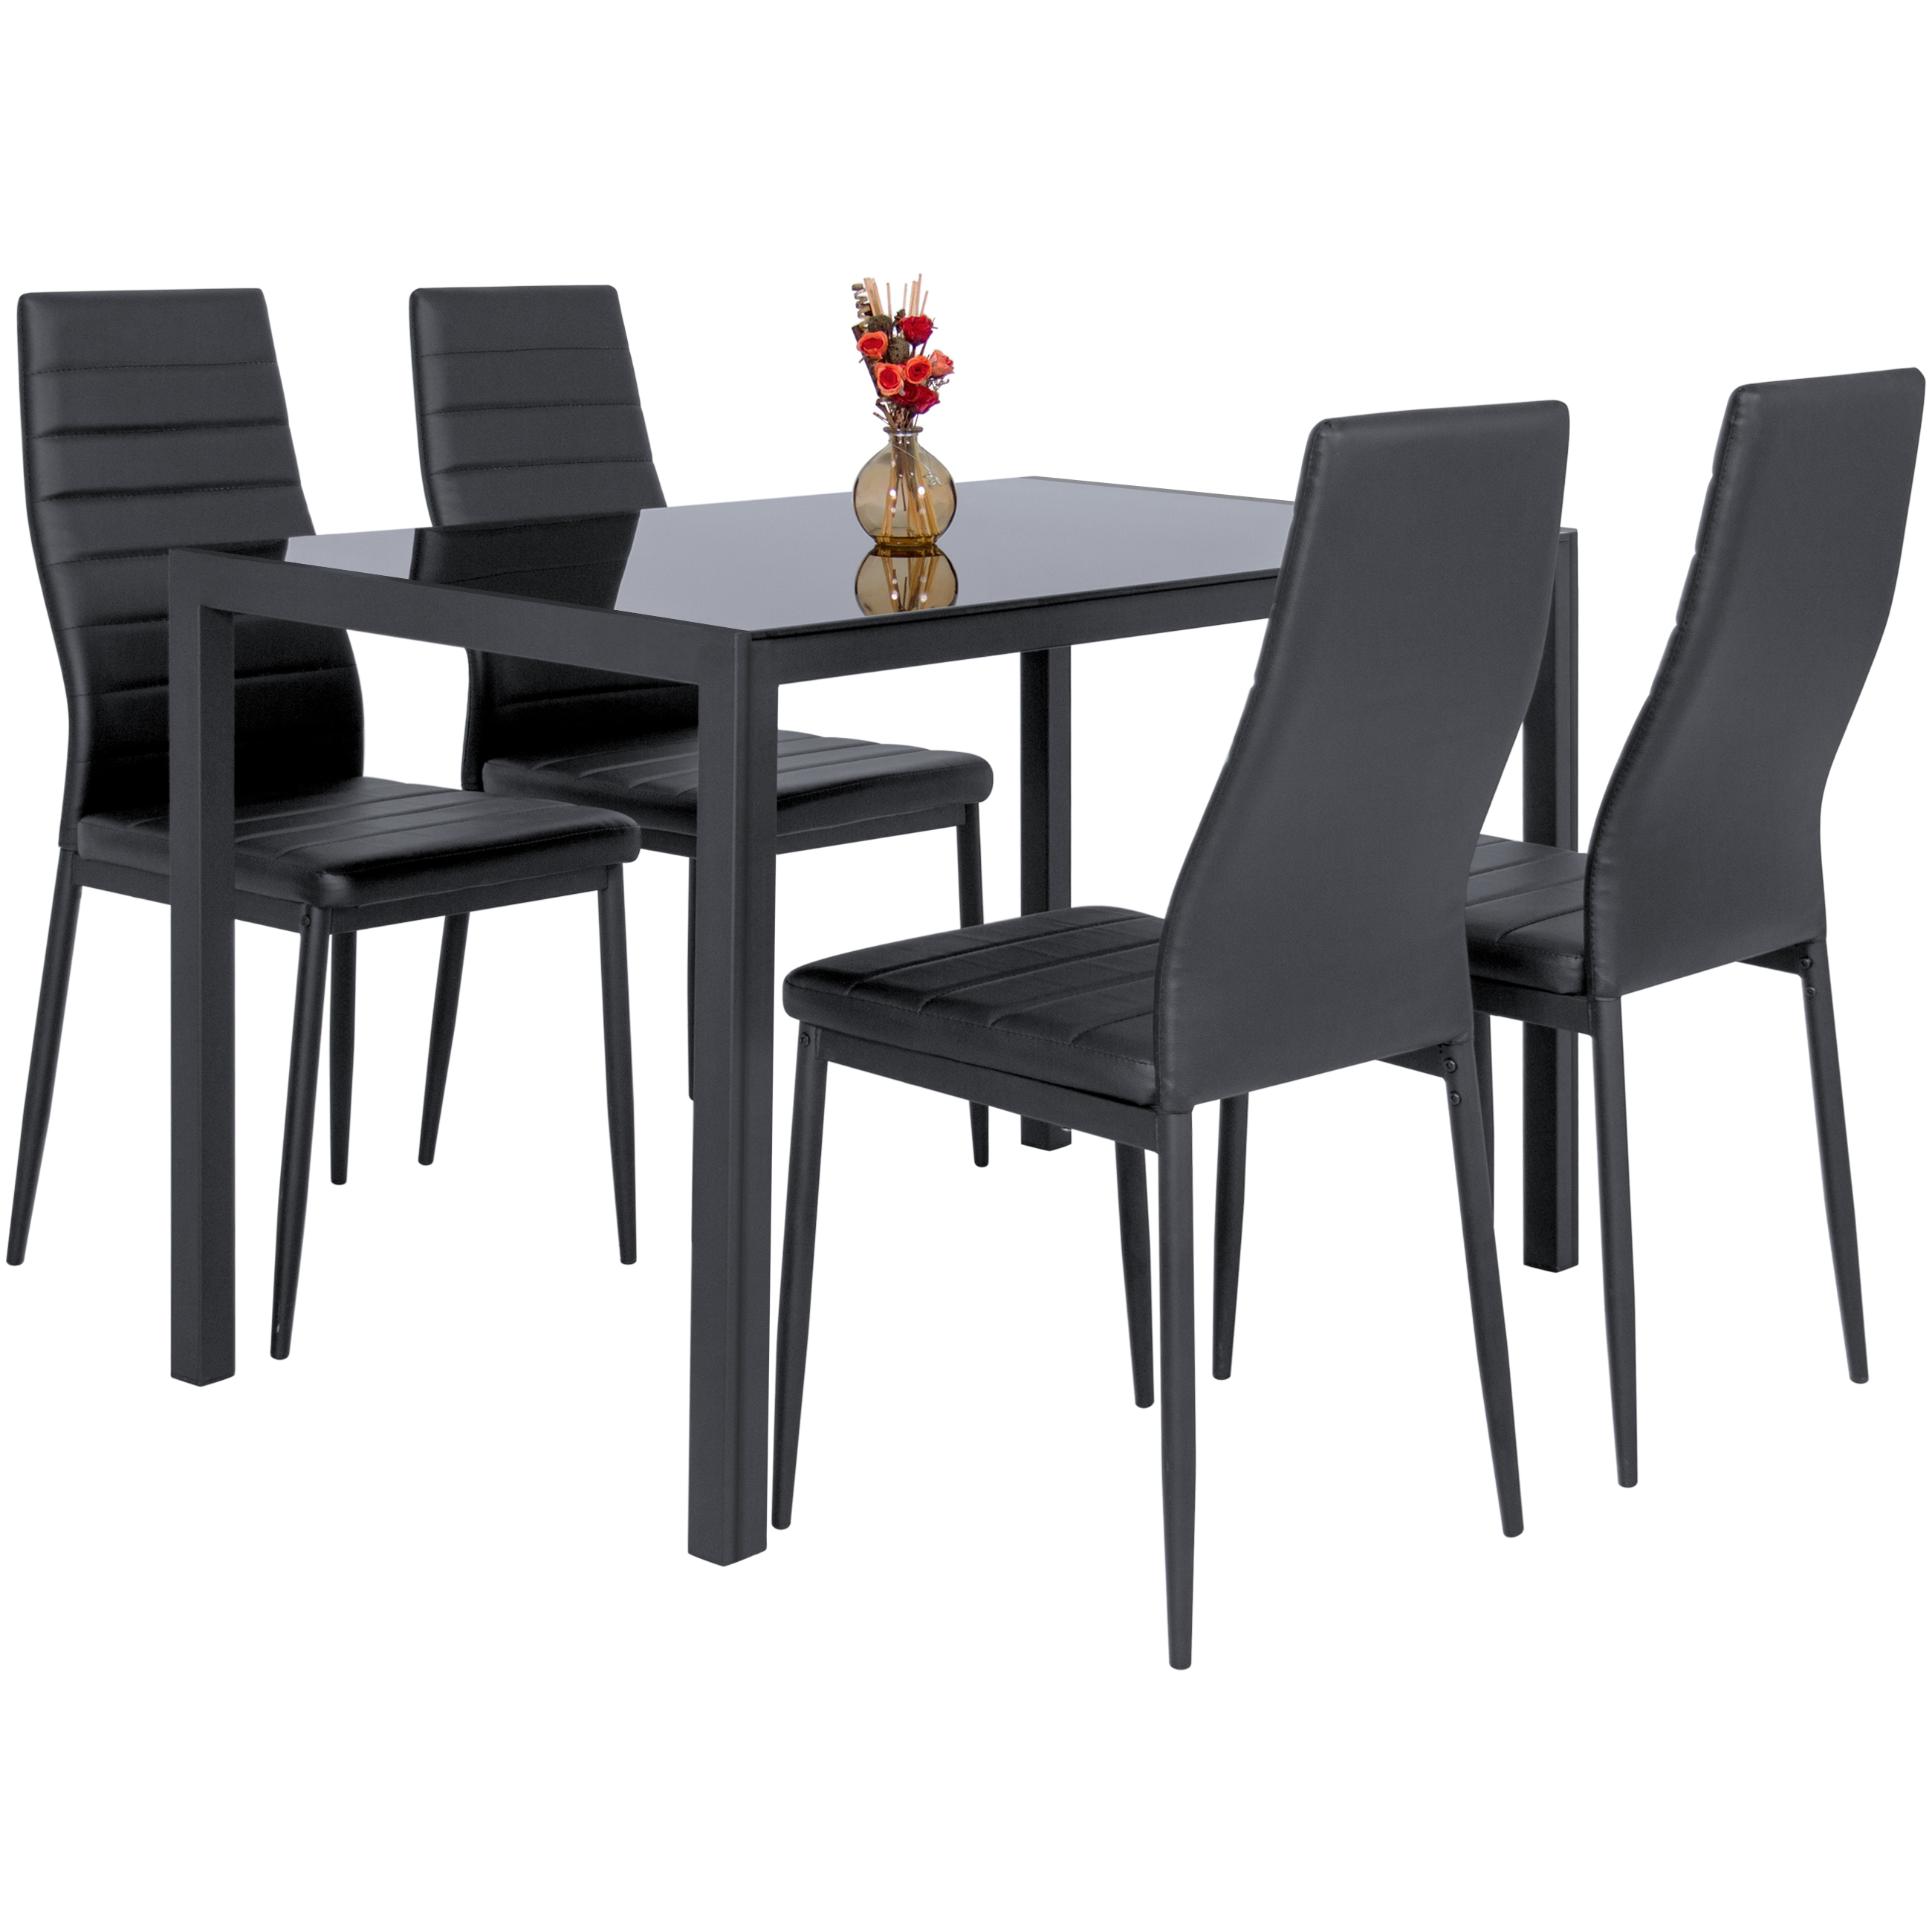 Glass Chair 5 Piece Kitchen Dining Table Set W Glass Top And 4 Leather